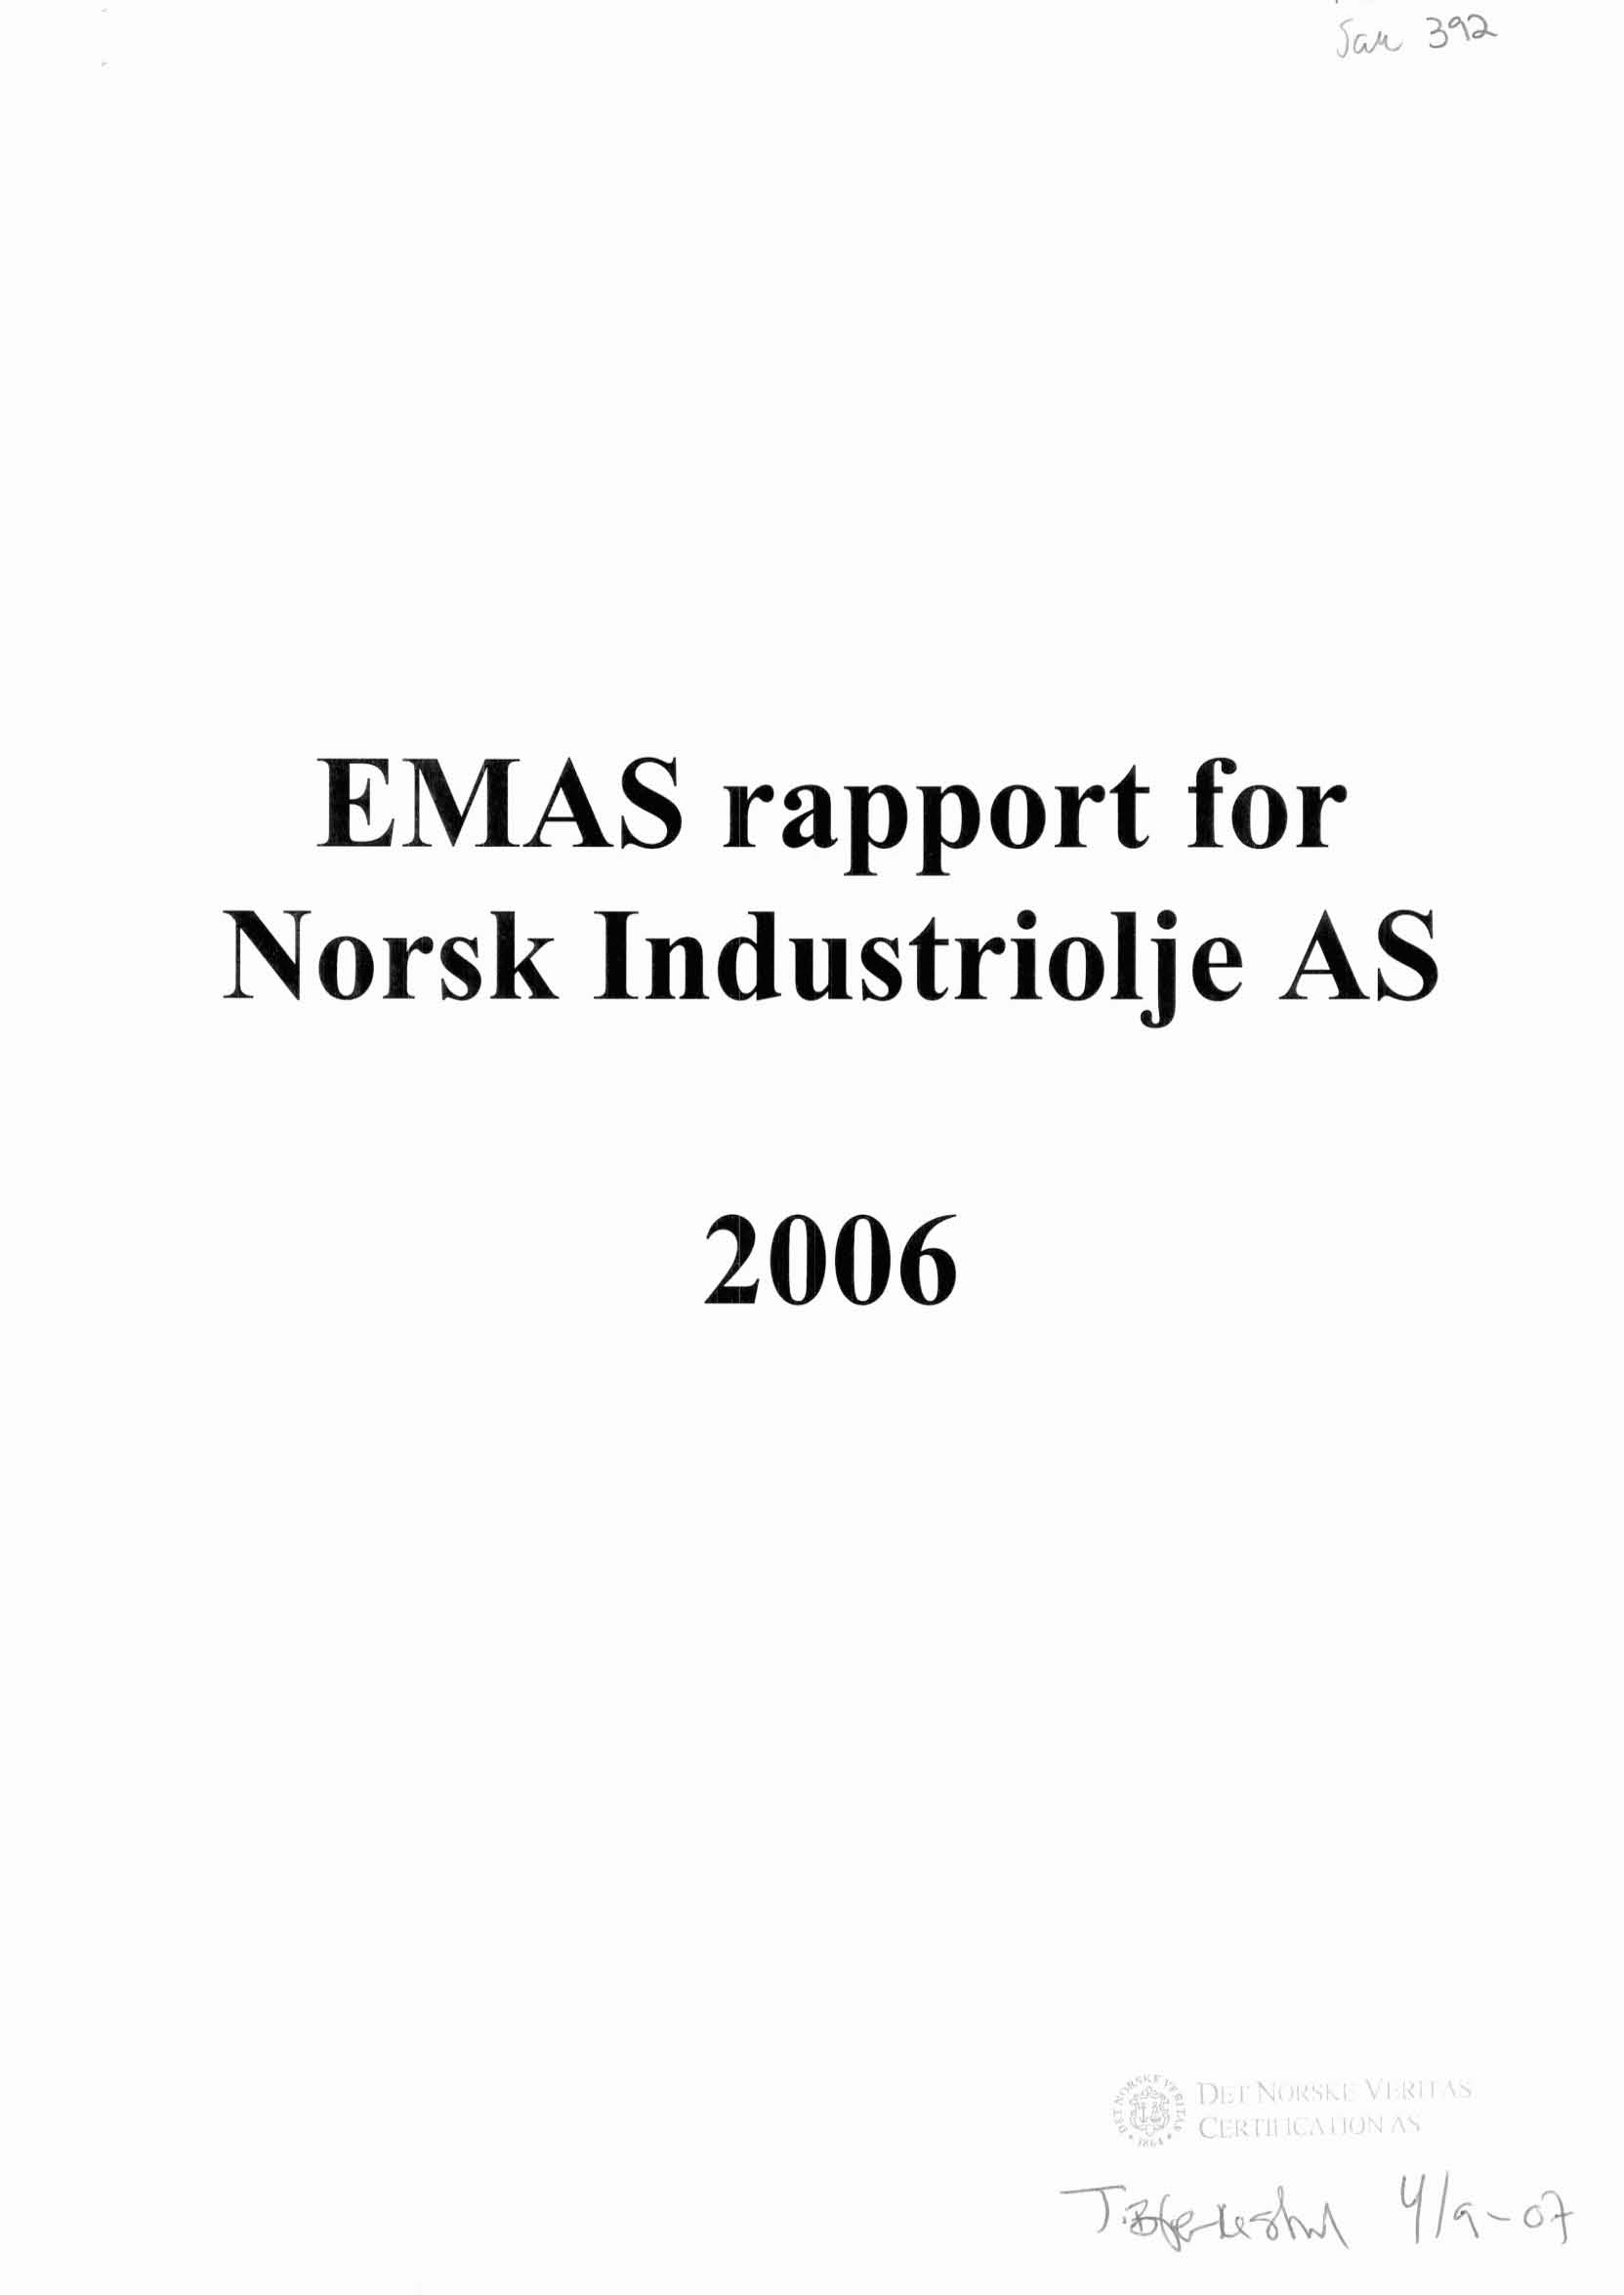 EMAS rapport for